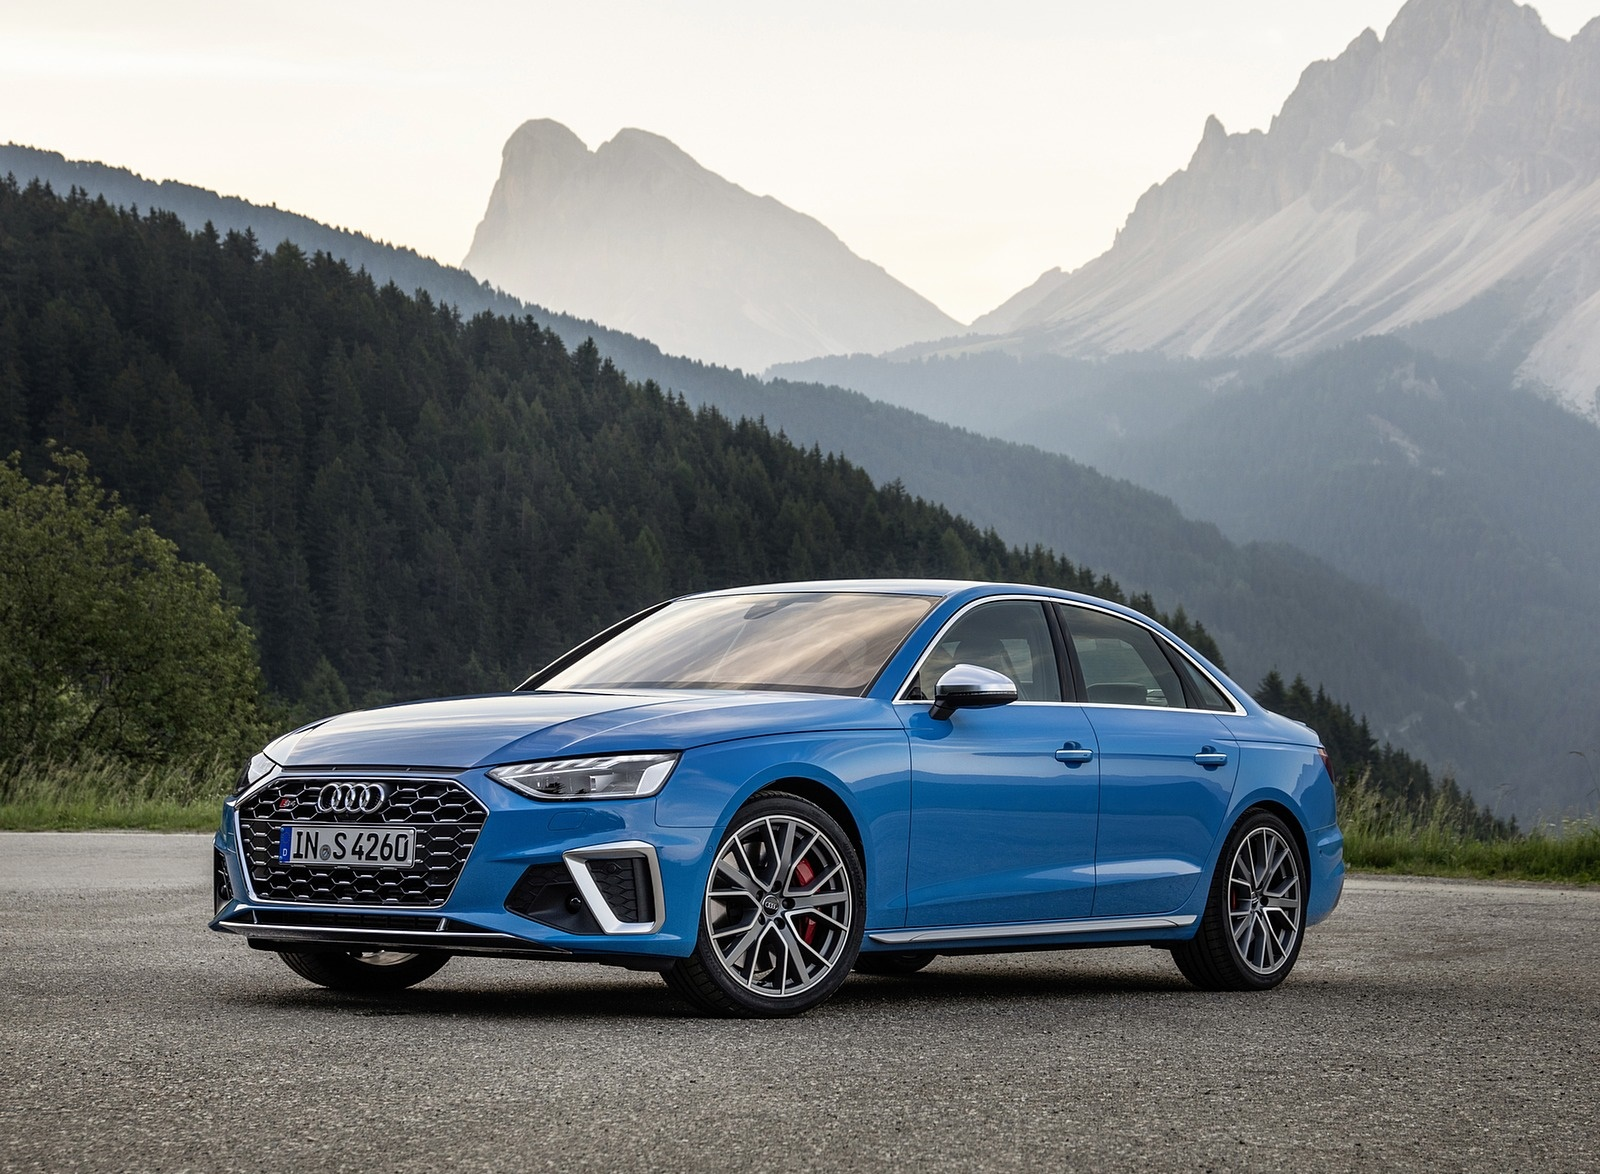 2019 Audi S4 TDI (Color: Turbo Blue) Front Three-Quarter Wallpapers (7)